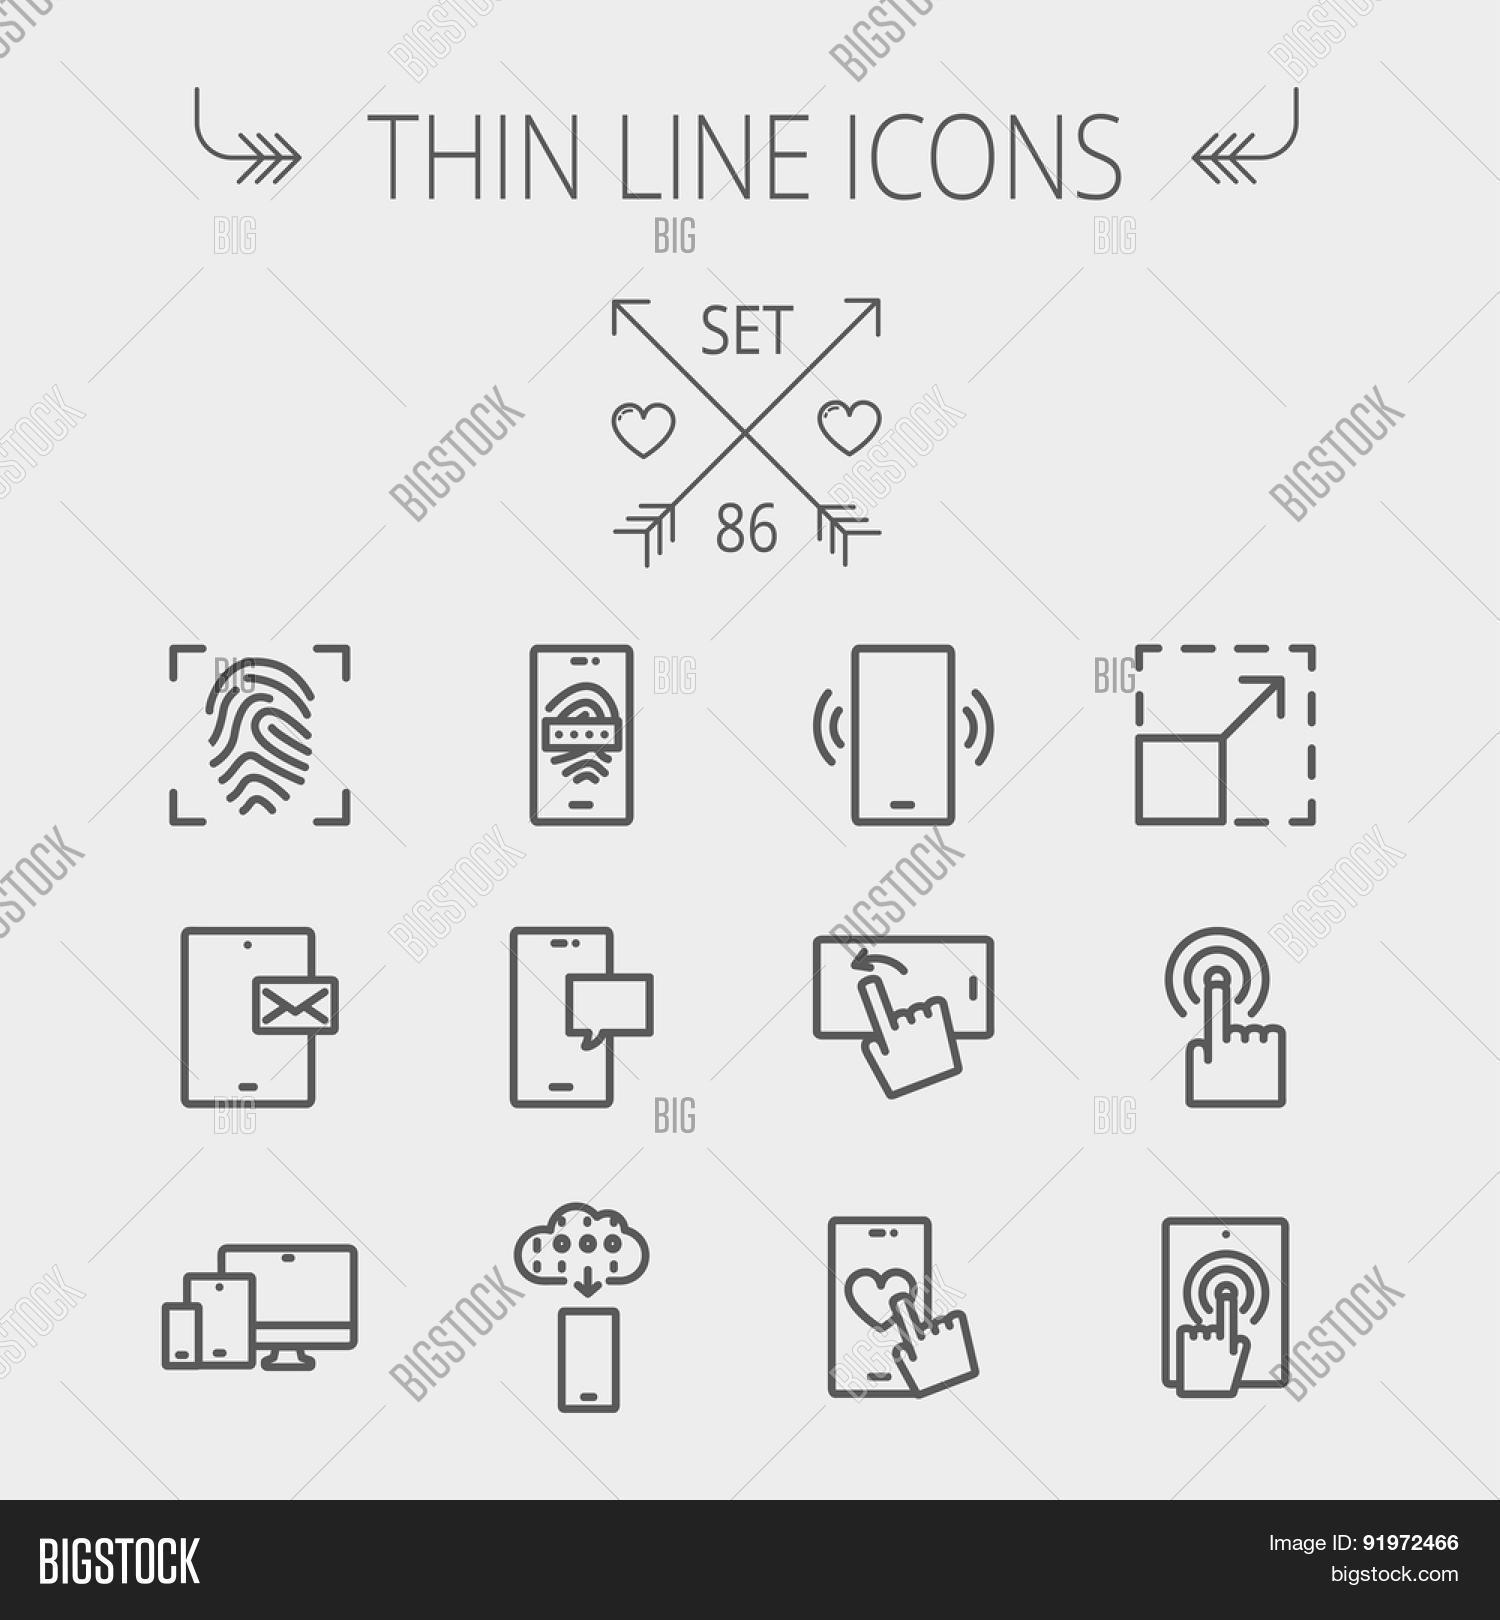 Wireless icon line iconset iconsmind - Technology Thin Line Icon Set For Web And Mobile Set Includes Mobiles Icons